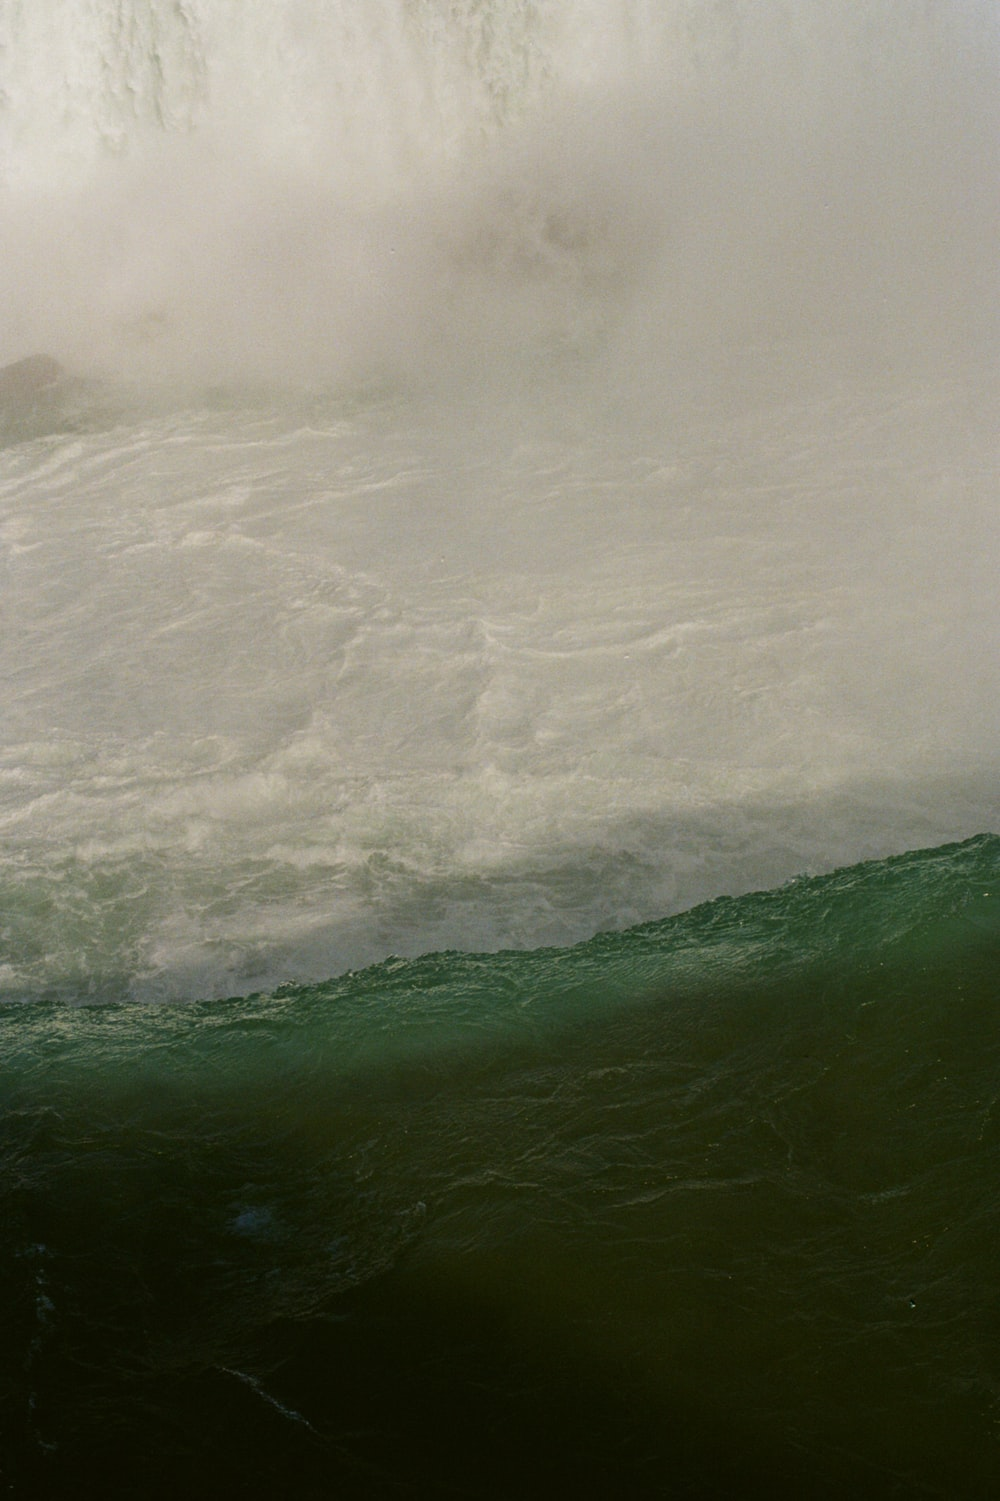 green water wave during daytime